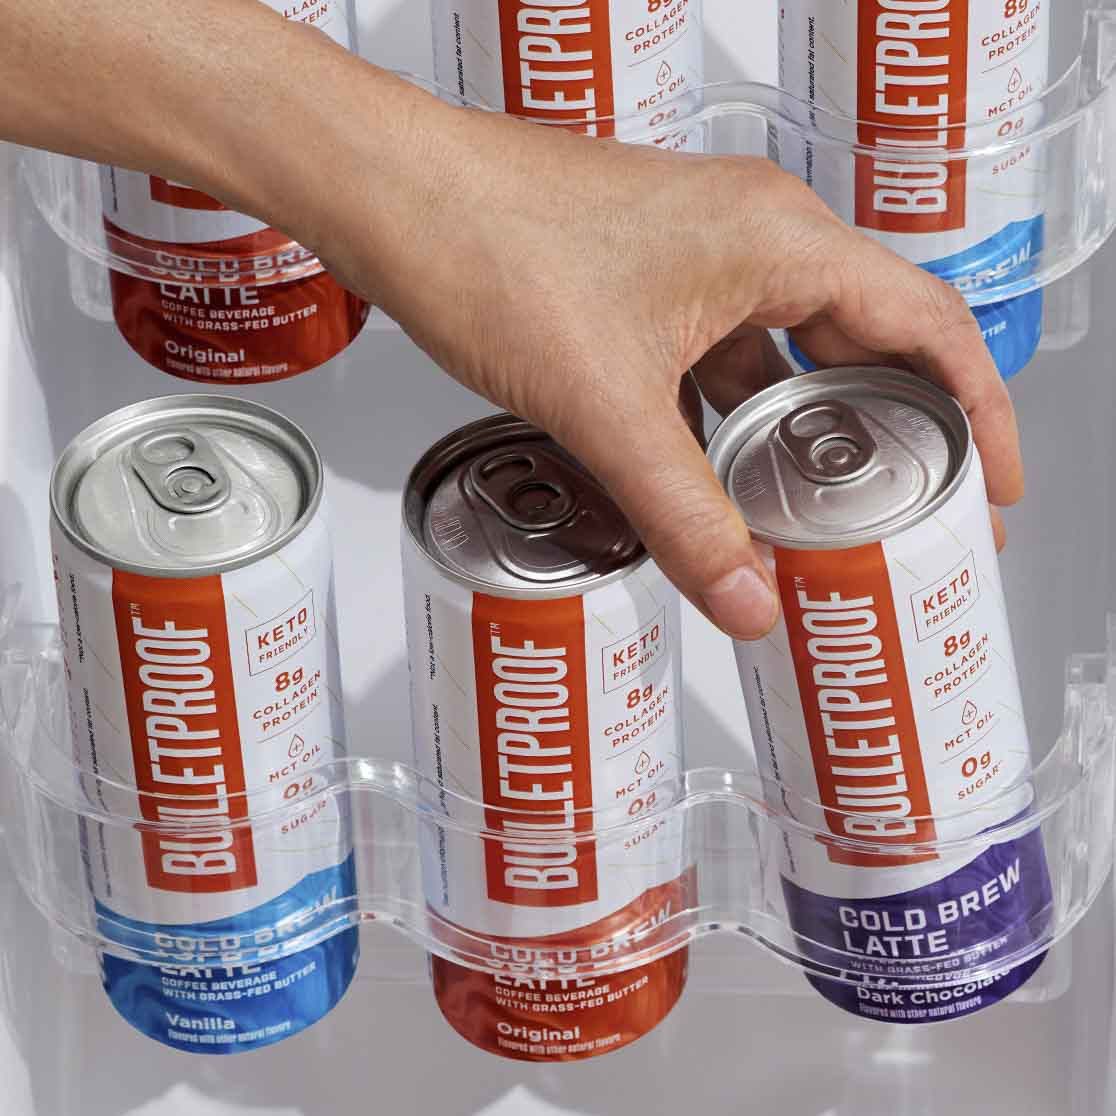 Bulletproof Variety Pack ready to drink cold brew